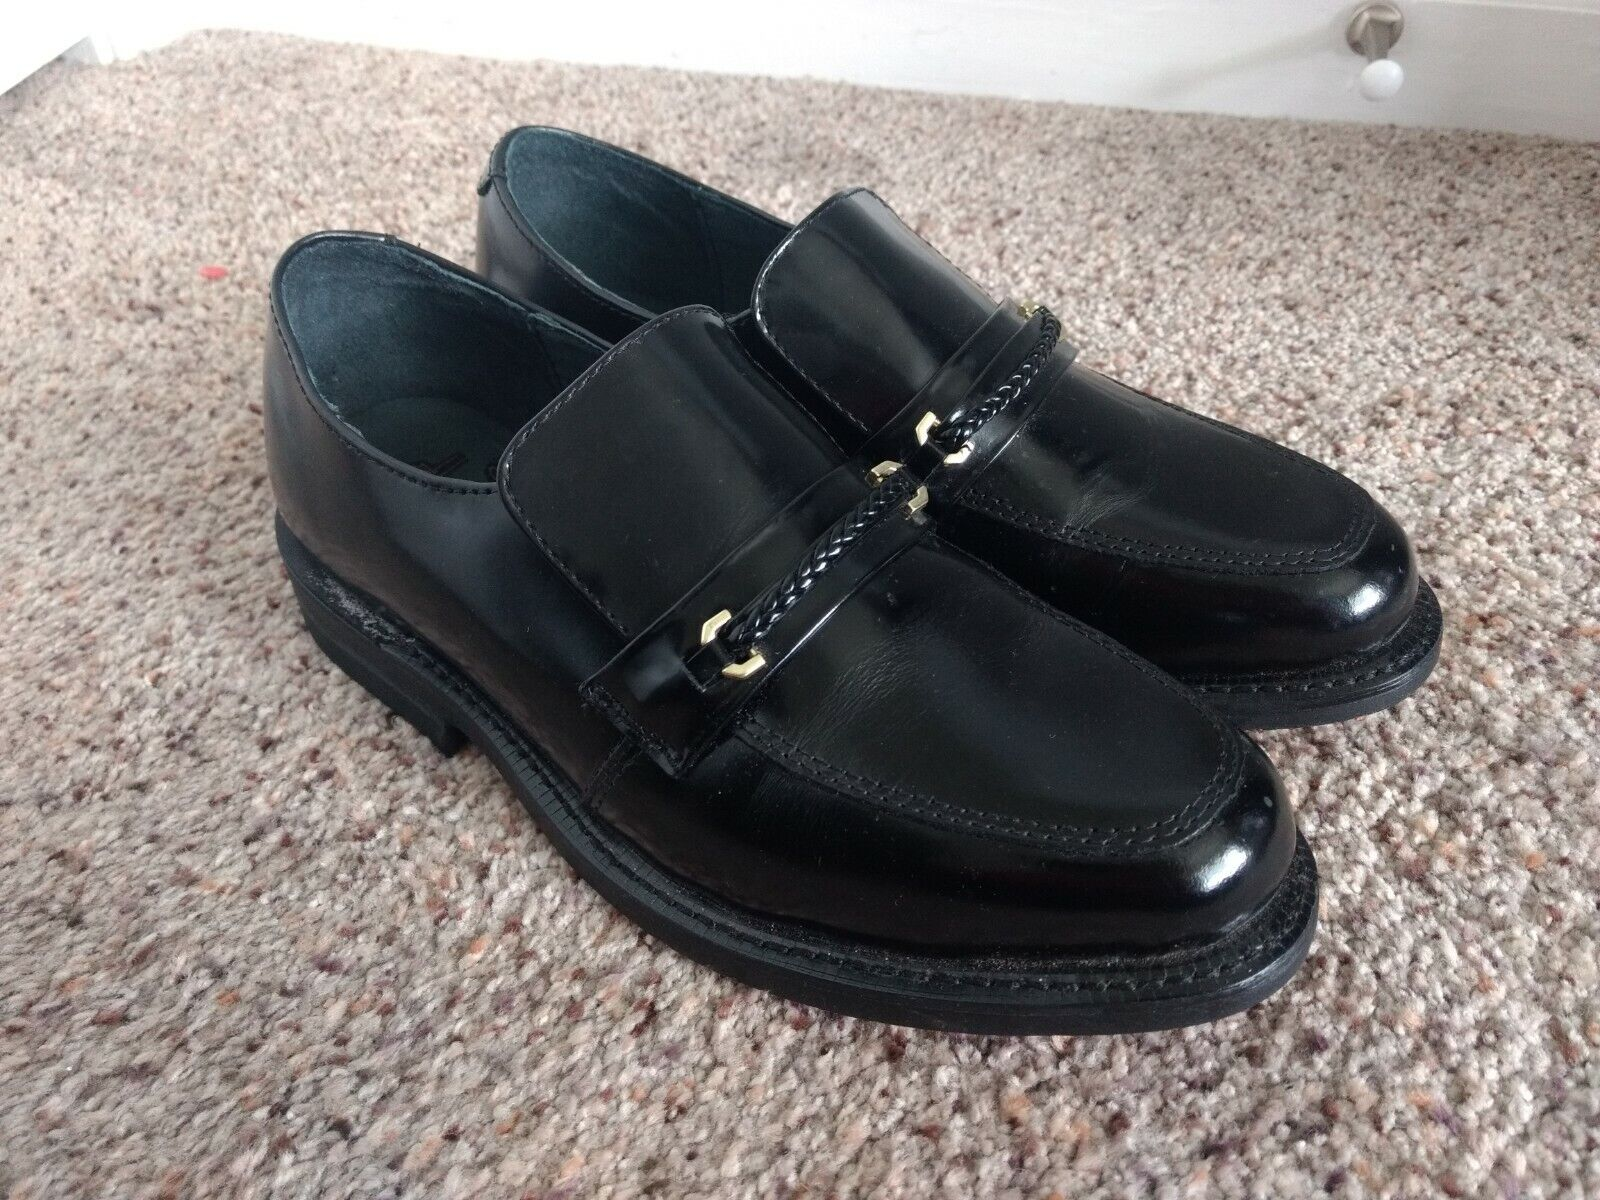 Executive Imperials Mens Size 9 E2 Black Leather Slip On Loafers shoes